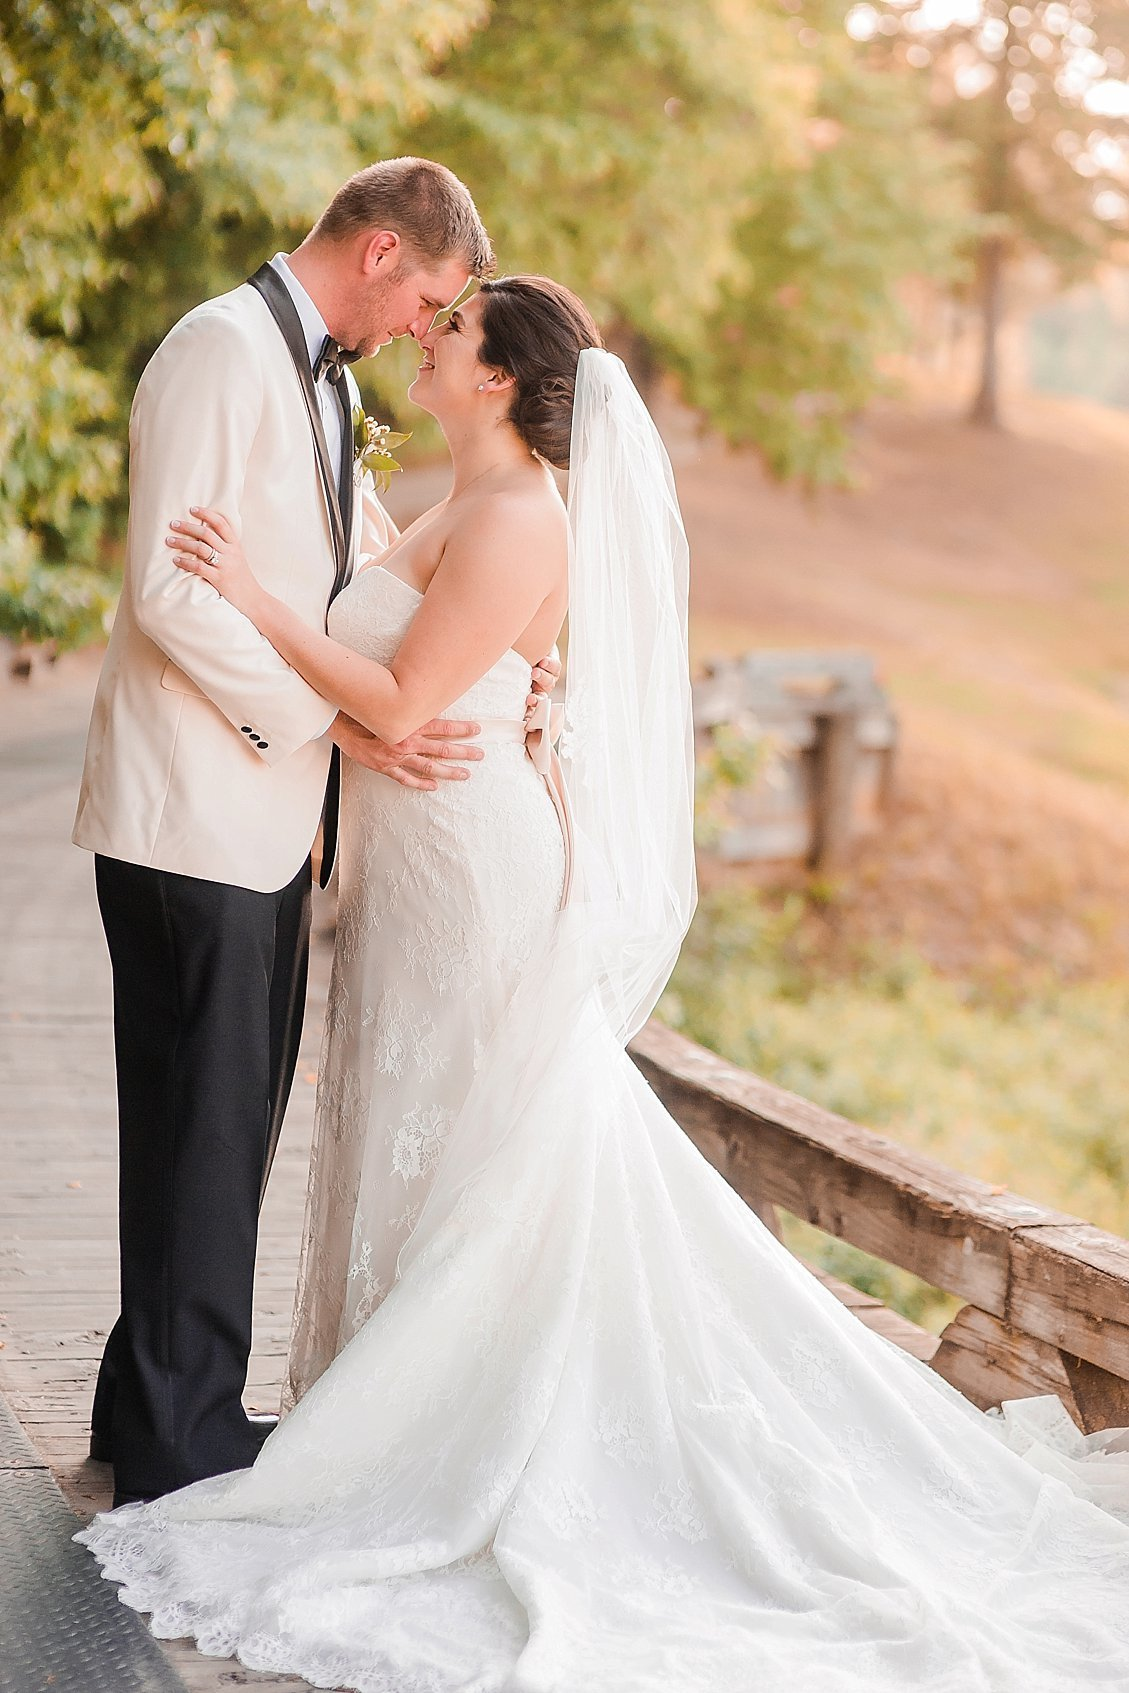 sharonelizabethphotography-independencegolfclubwedding-richmondvirginiawedding-classicgolfcoursewedding4189